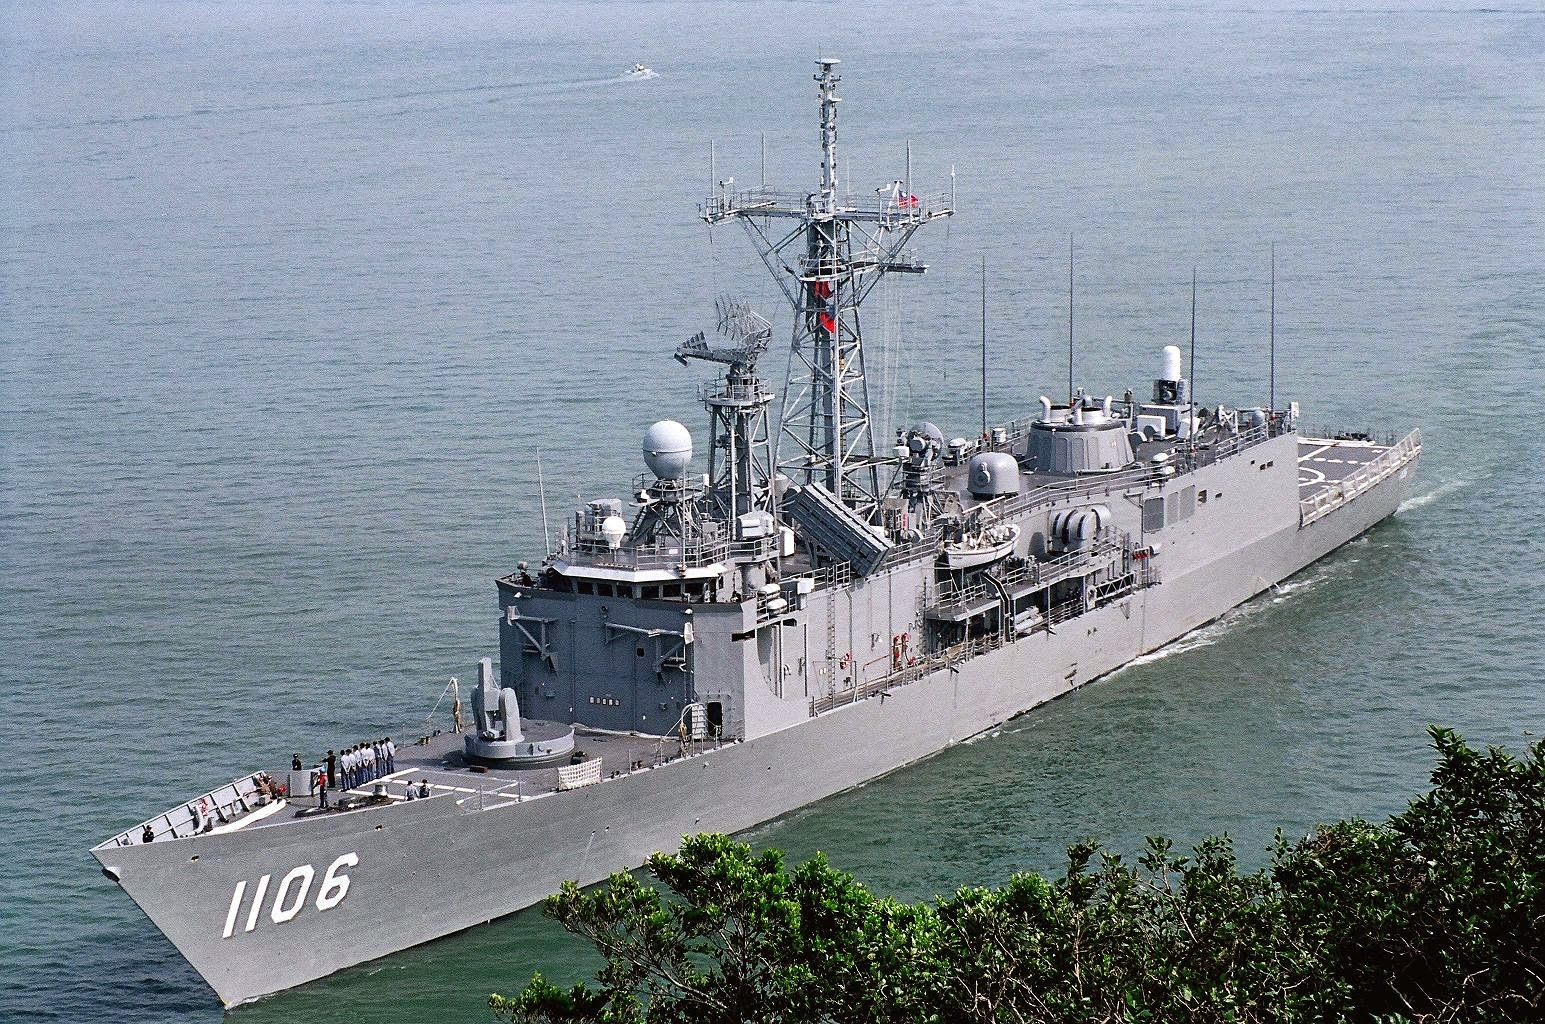 Republic of China (Taiwan) Navy Cheng Kung -class frigate, Taiwanese